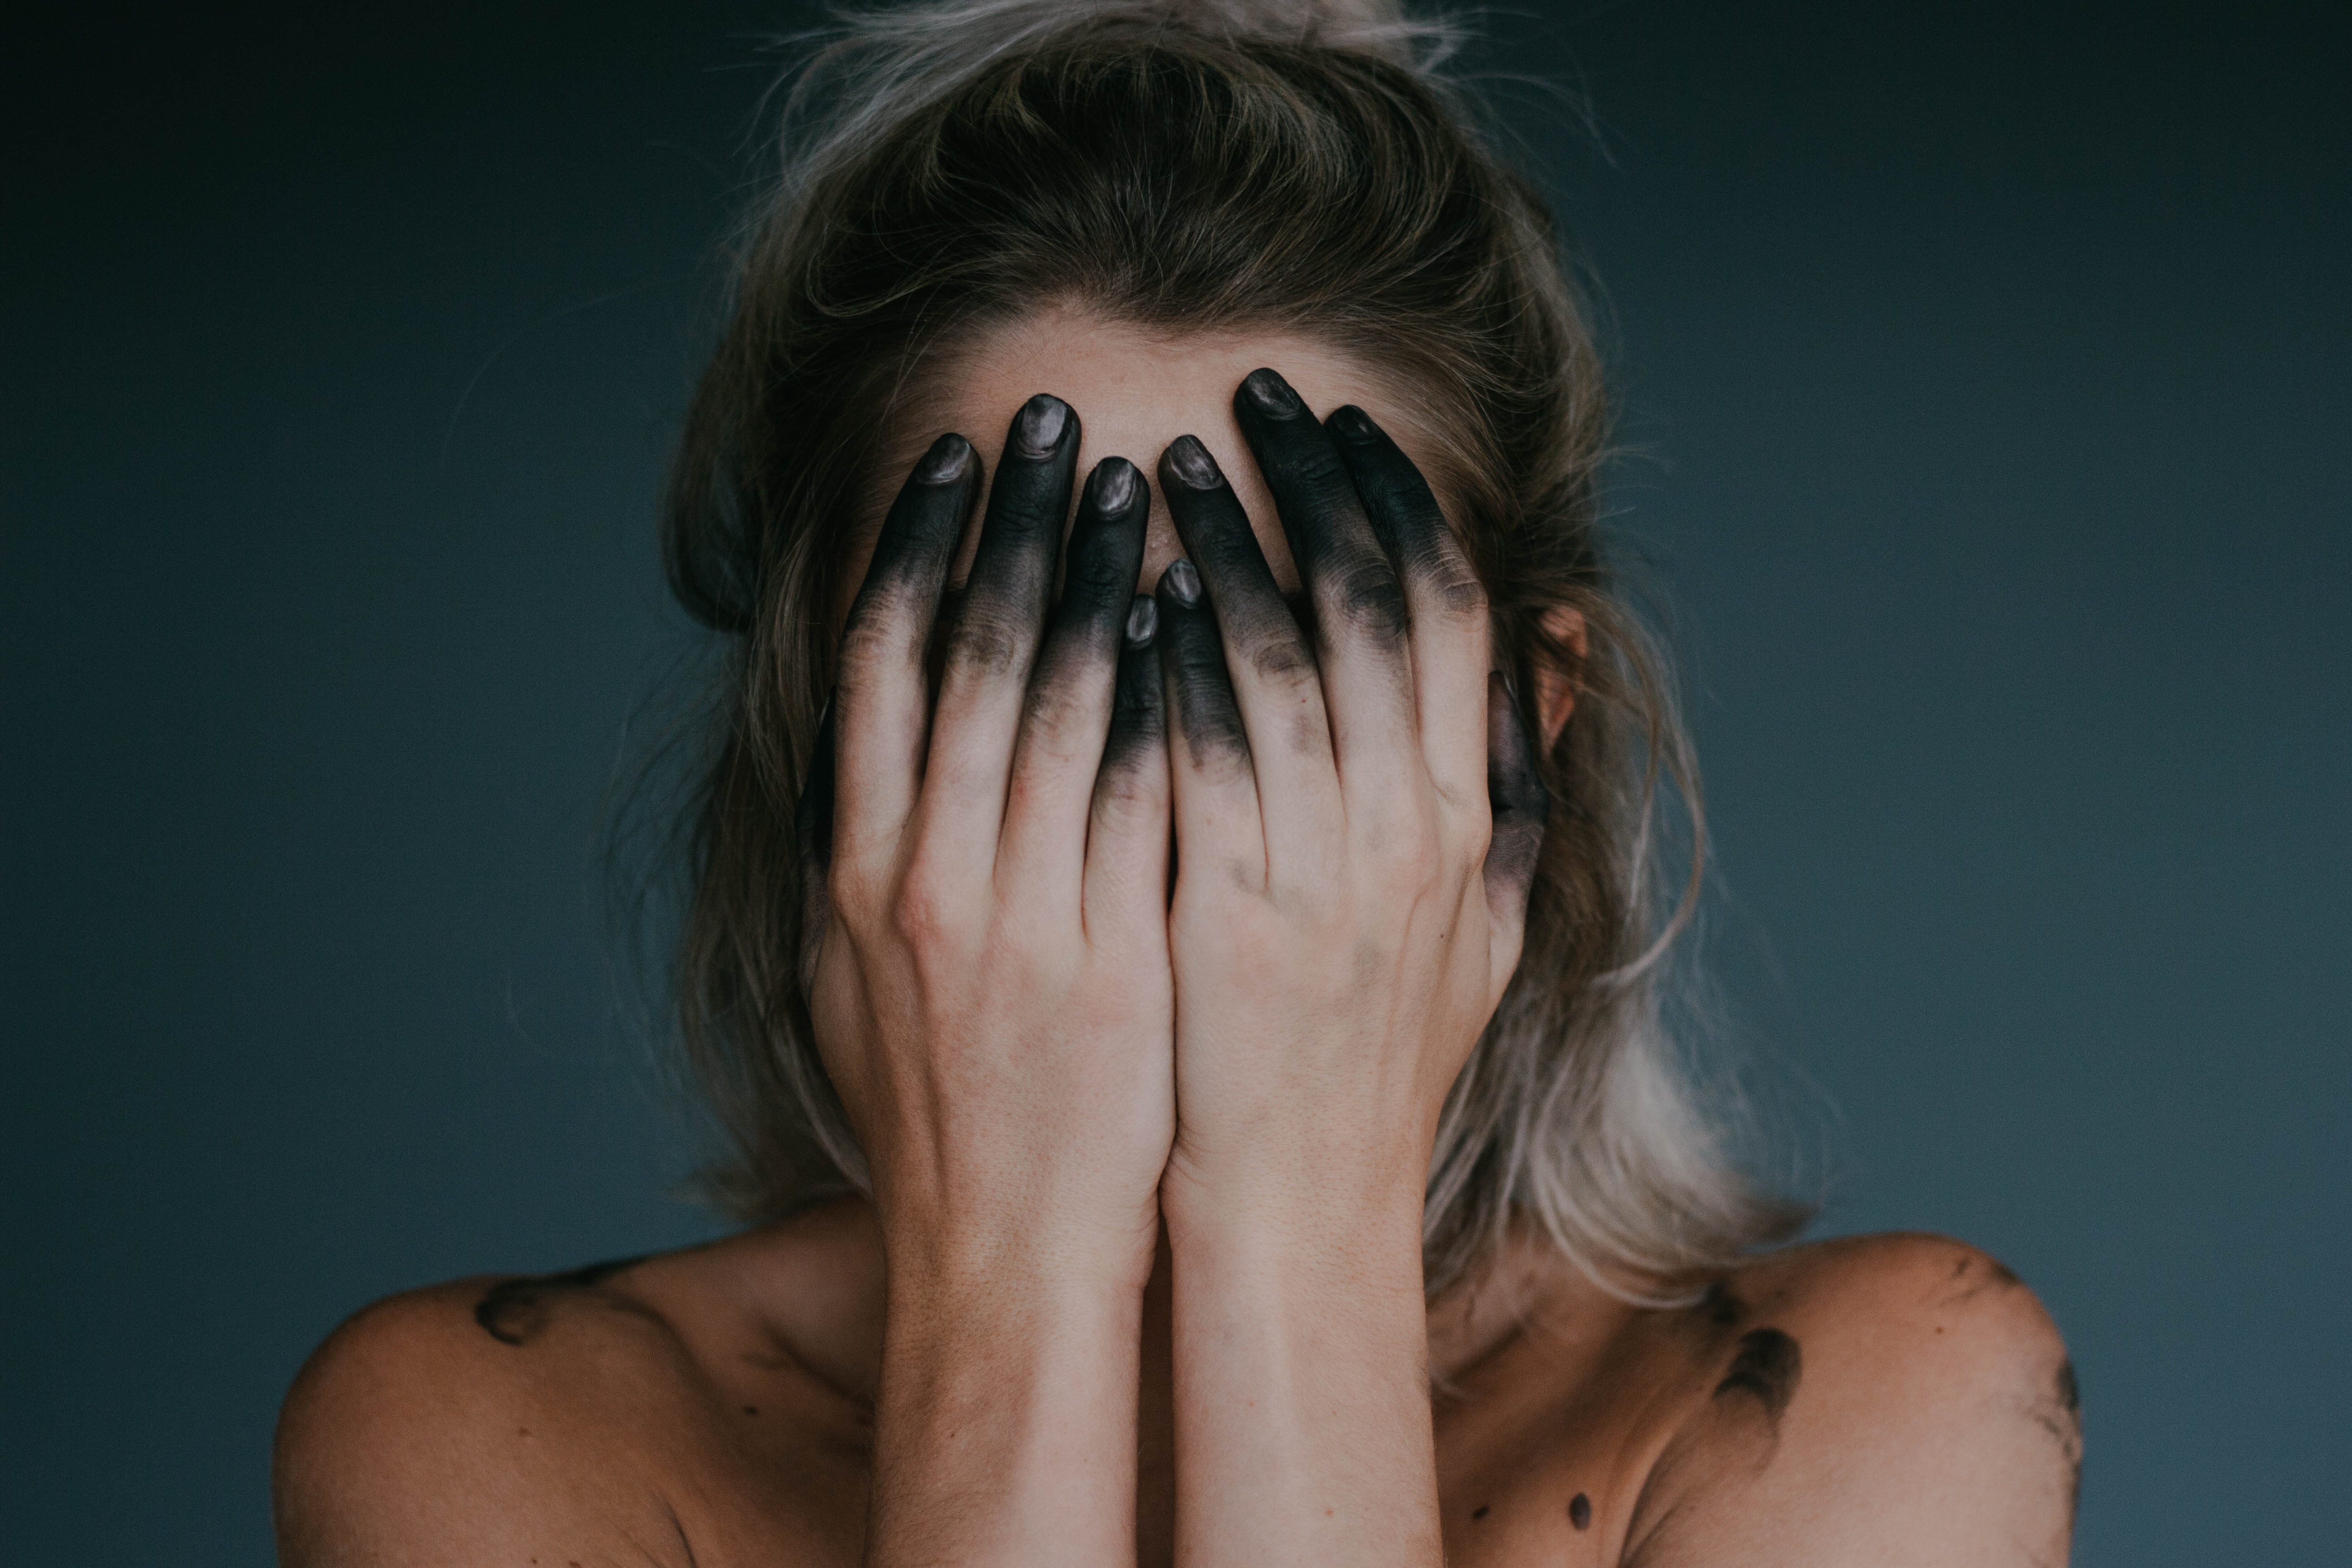 Woman covering her face. Tips of her fingers are covered in charcoal to represent feelings of burnout.